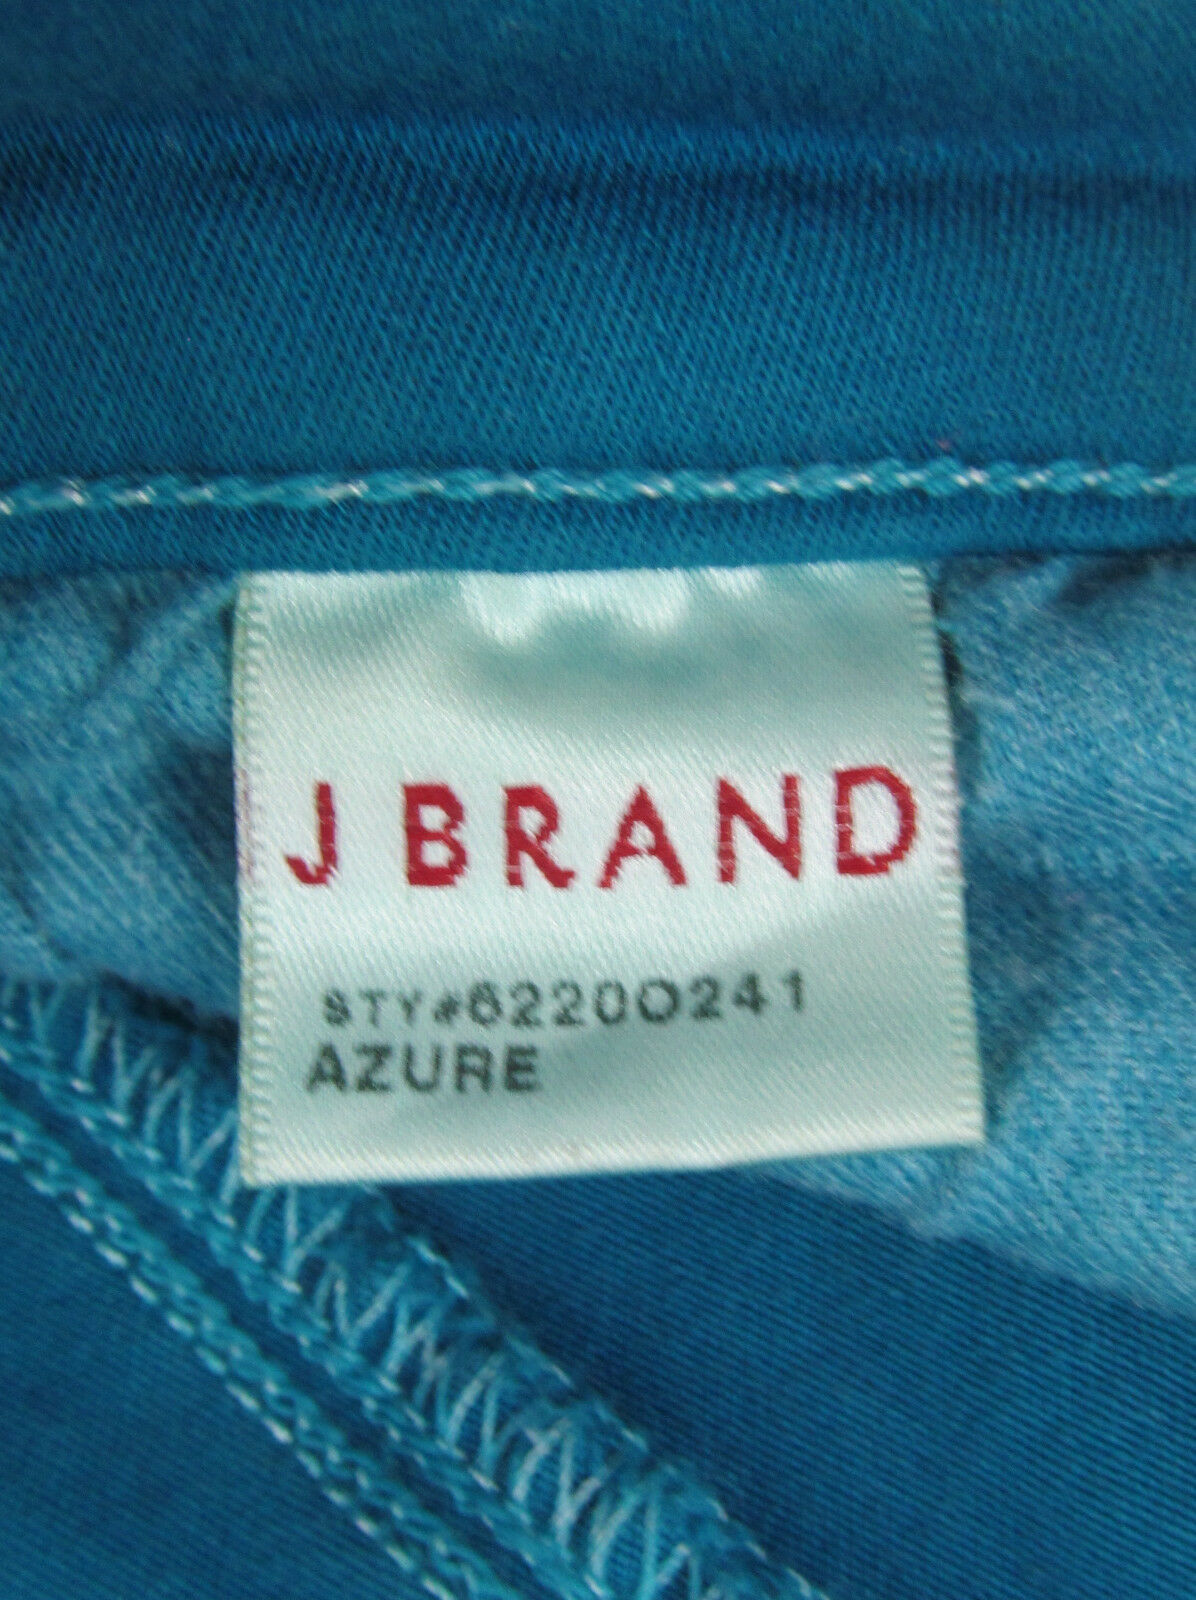 J Brand jeans Azure Ankle Skinny Zipper cuffs USA Made Teal Womens Size 25 image 6